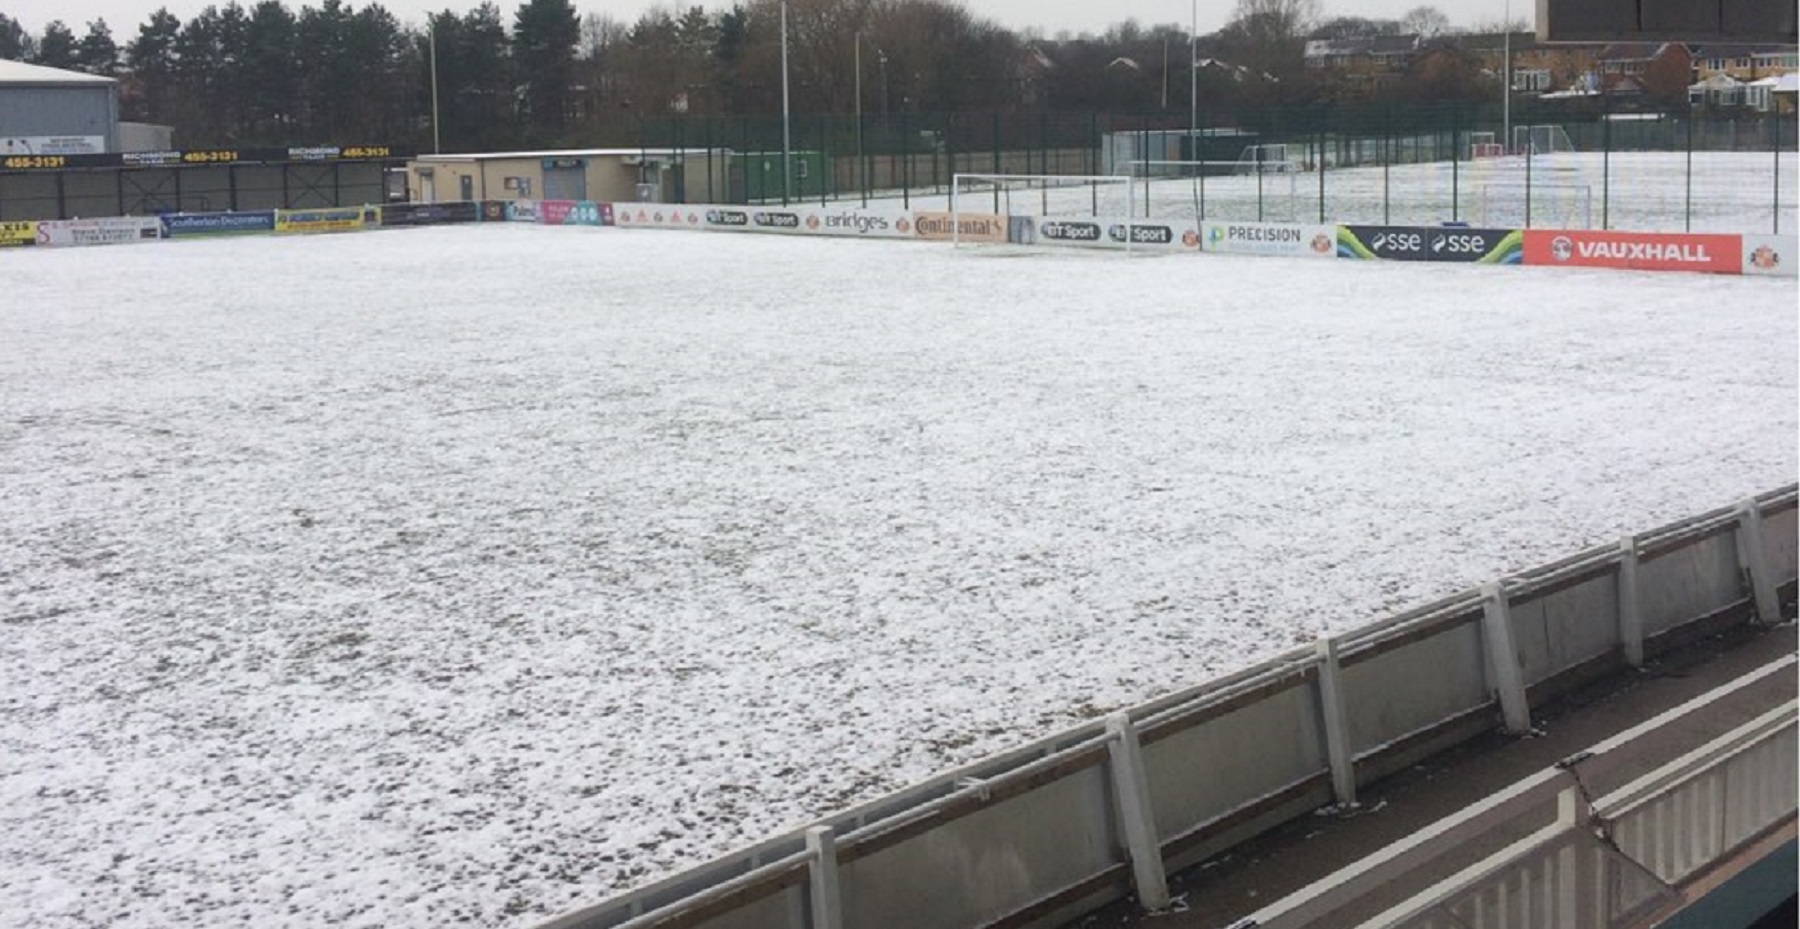 3G bookings cancelled due to severe weather conditions